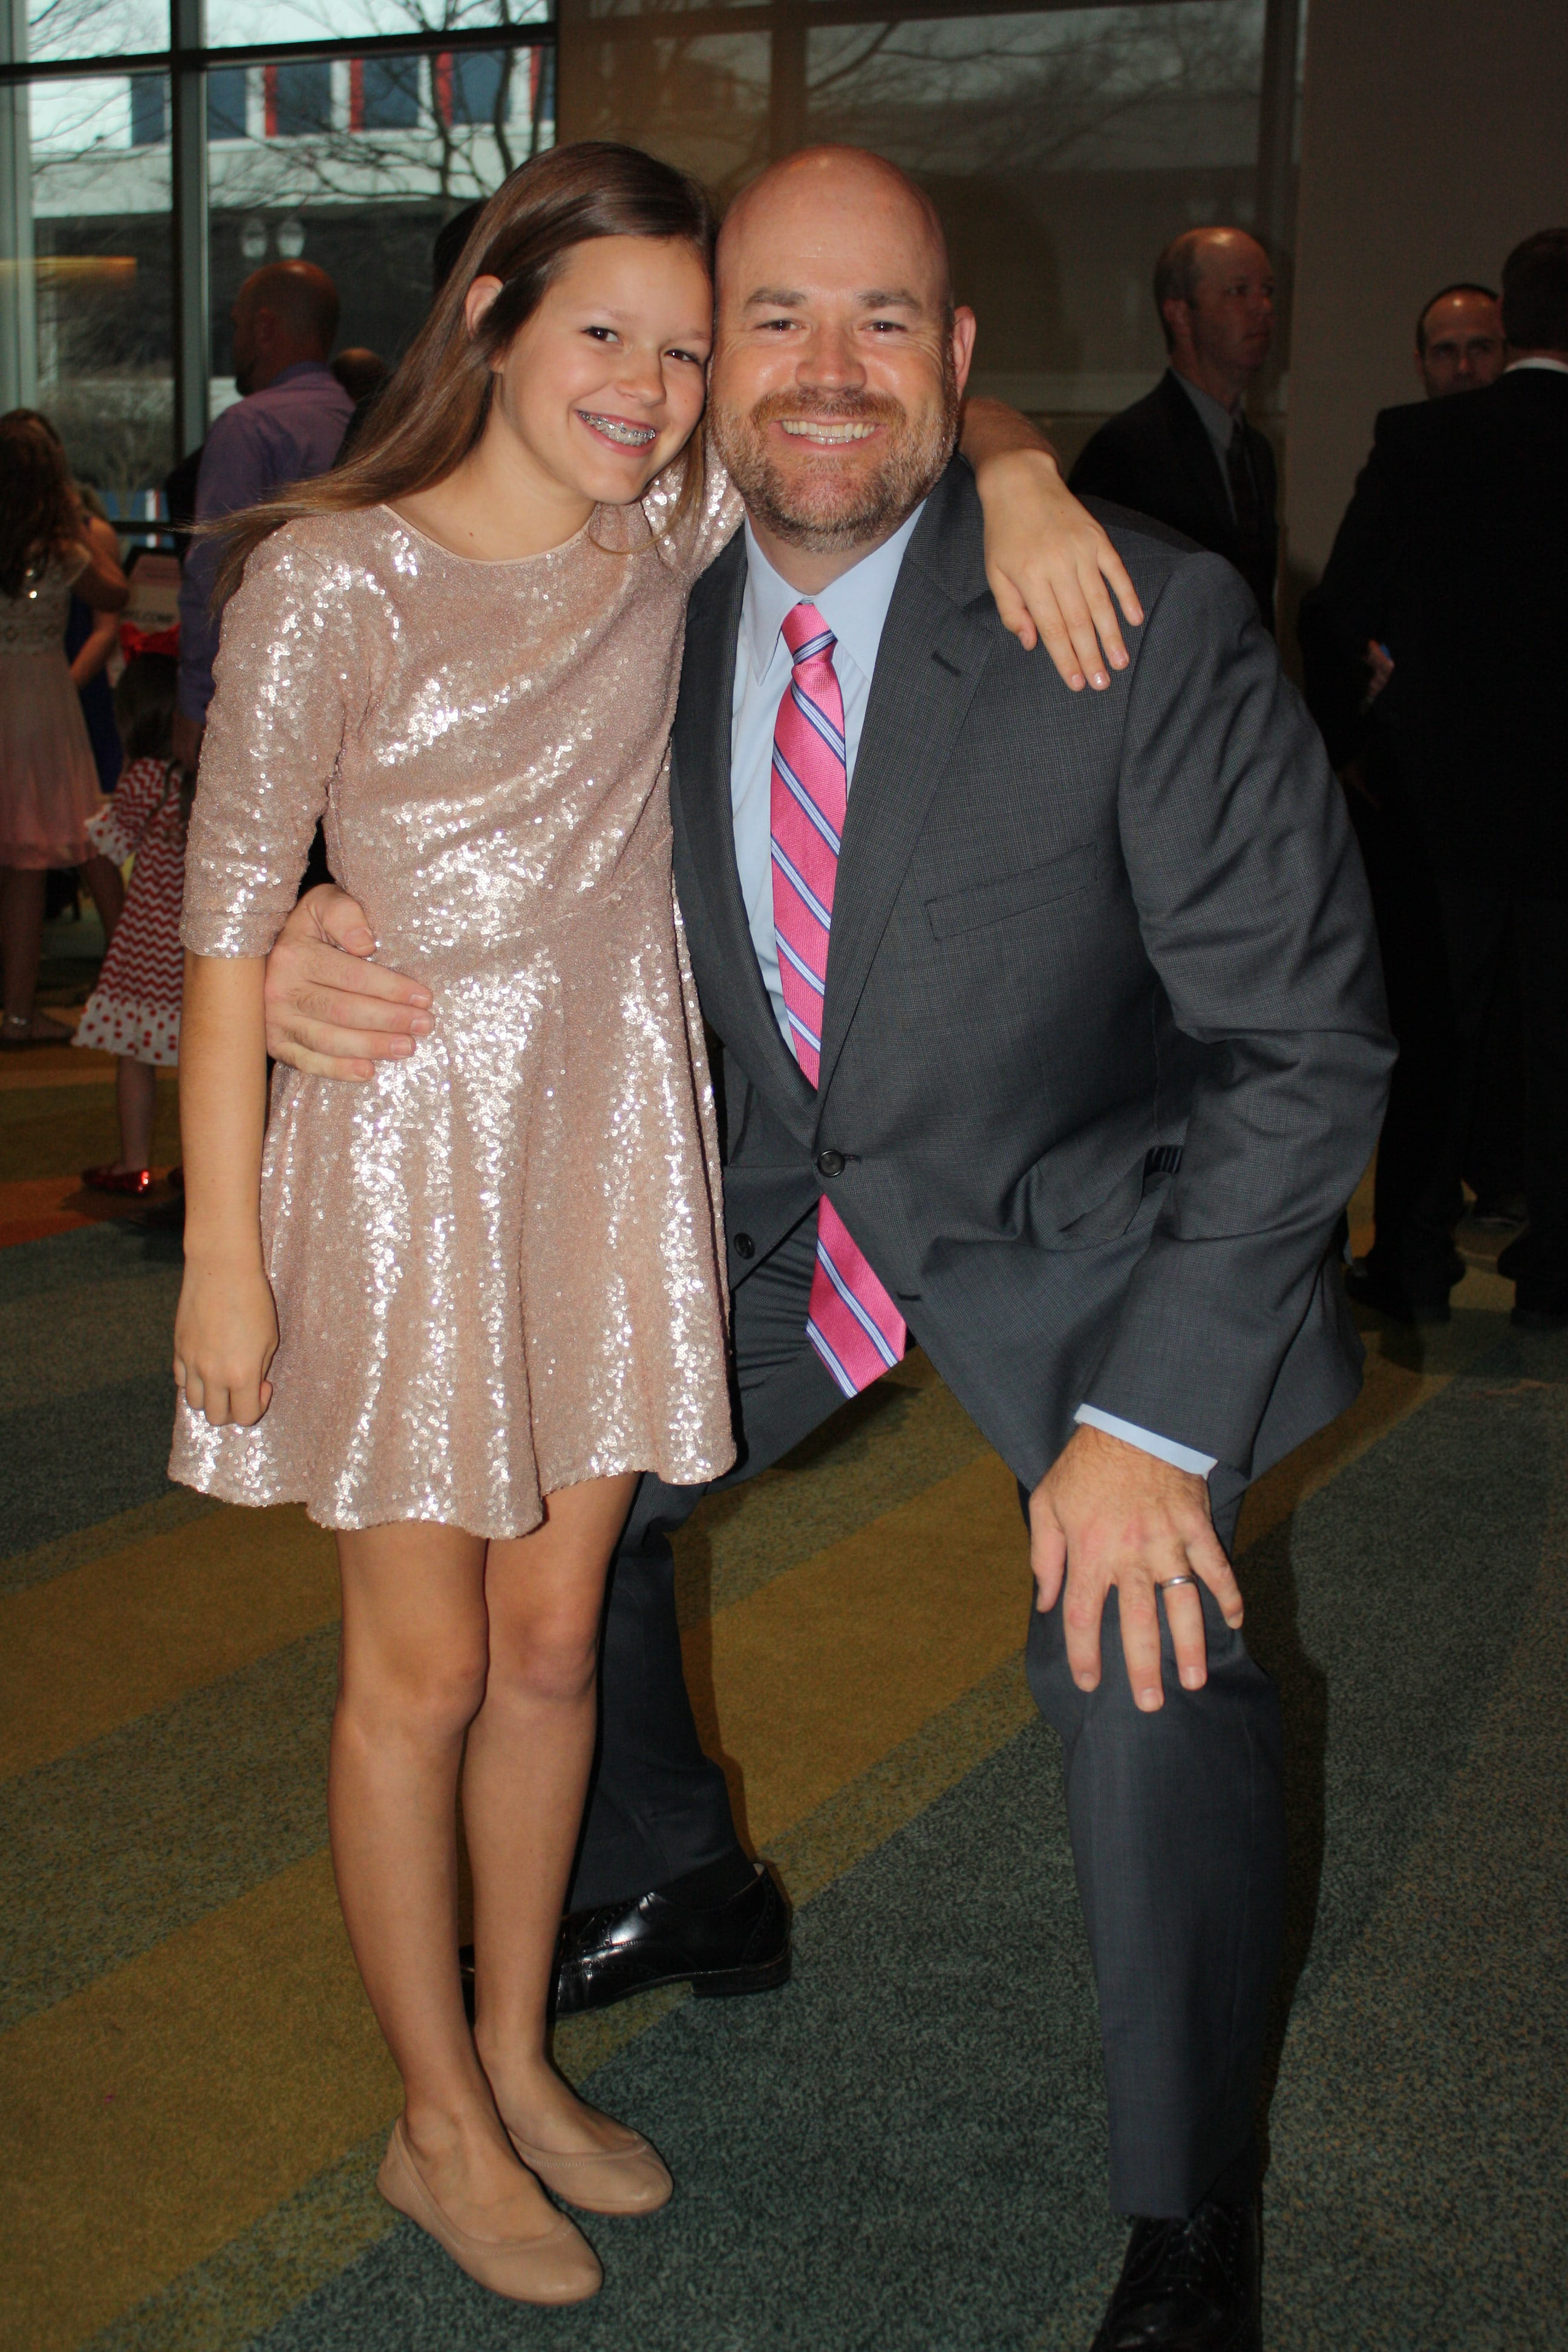 Baton Rouge General Father Daughter Sweetheart Dance